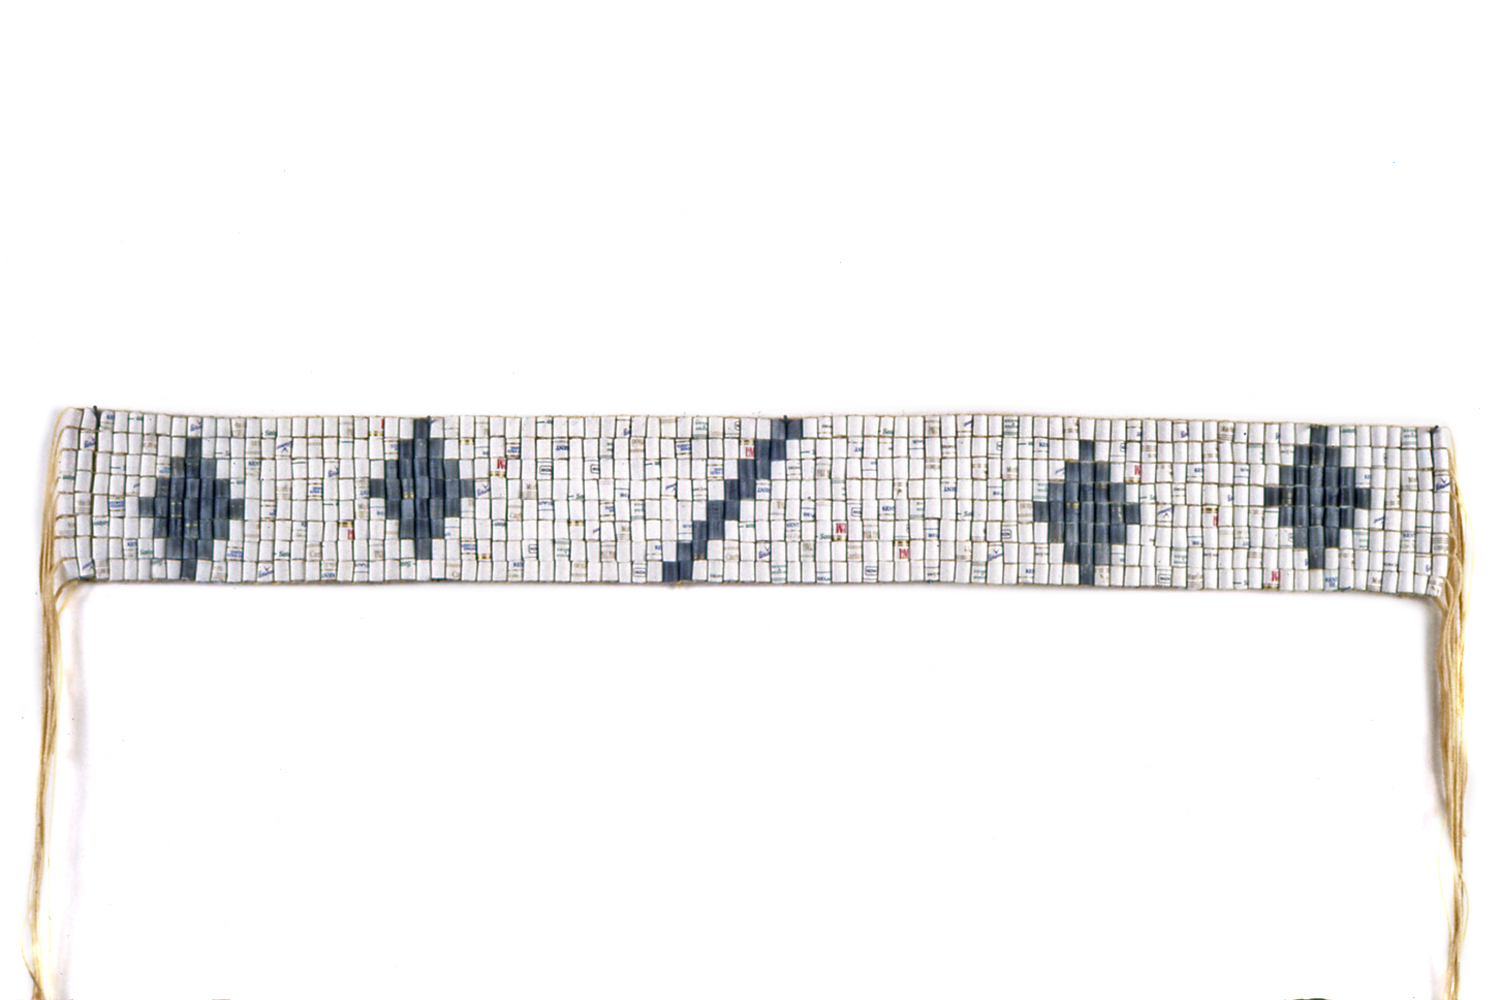 CONDOLENCE BELT  With    cigarette filters substituted for shell beads, this hand-woven belt is patterned after an     Iroquois wampum belt that was used to express condolence.